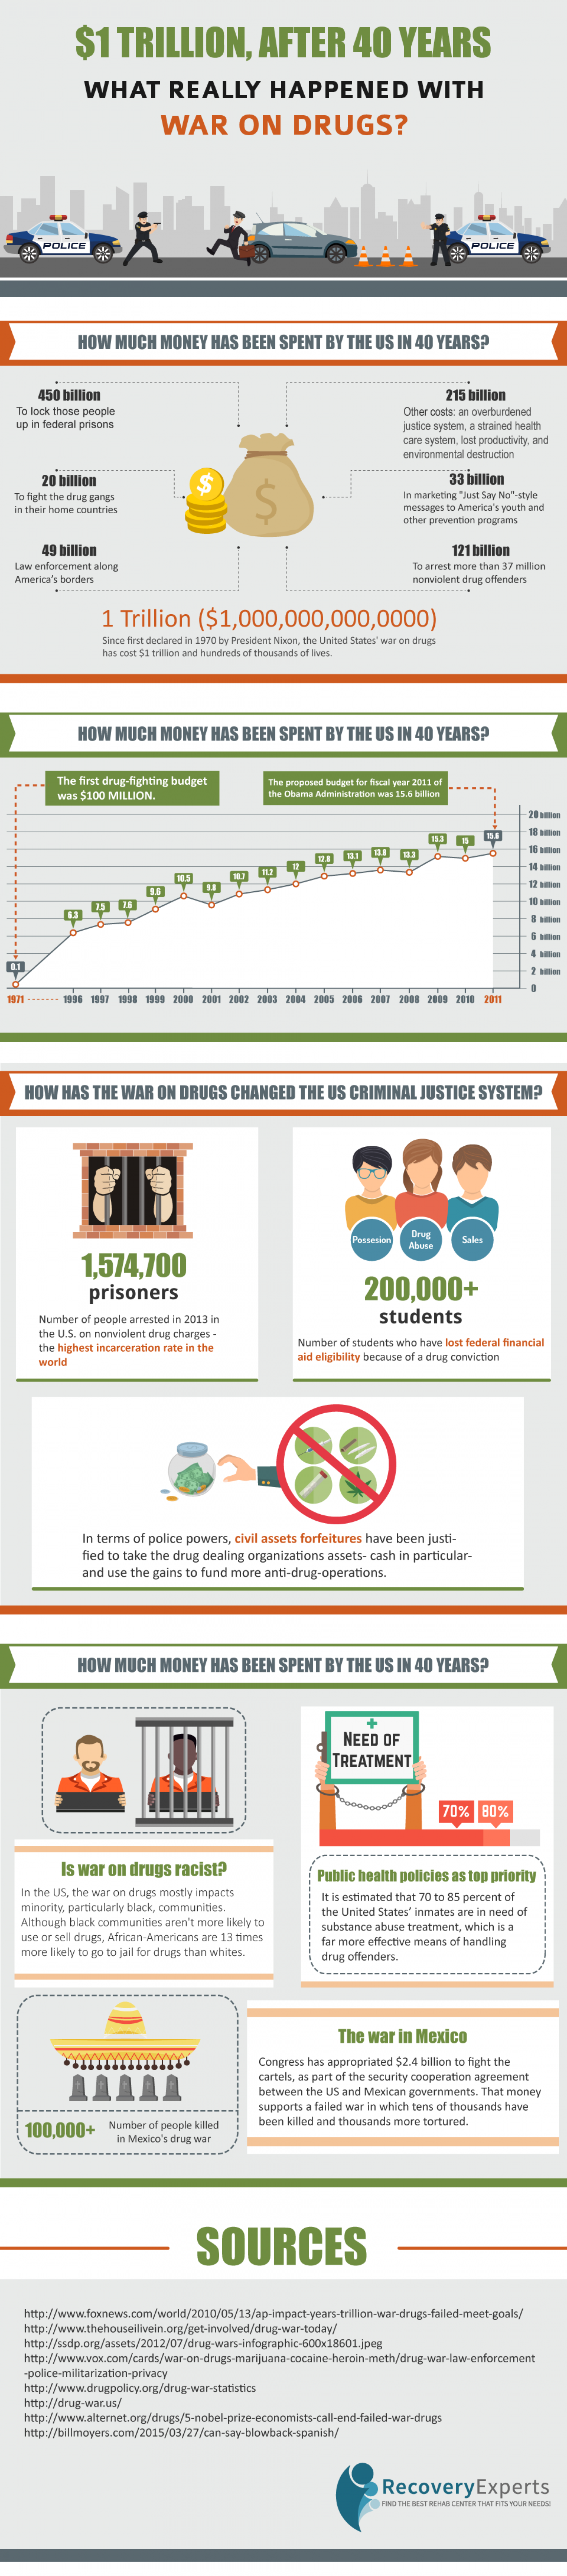 What Really Happened with War on Drugs Infographic